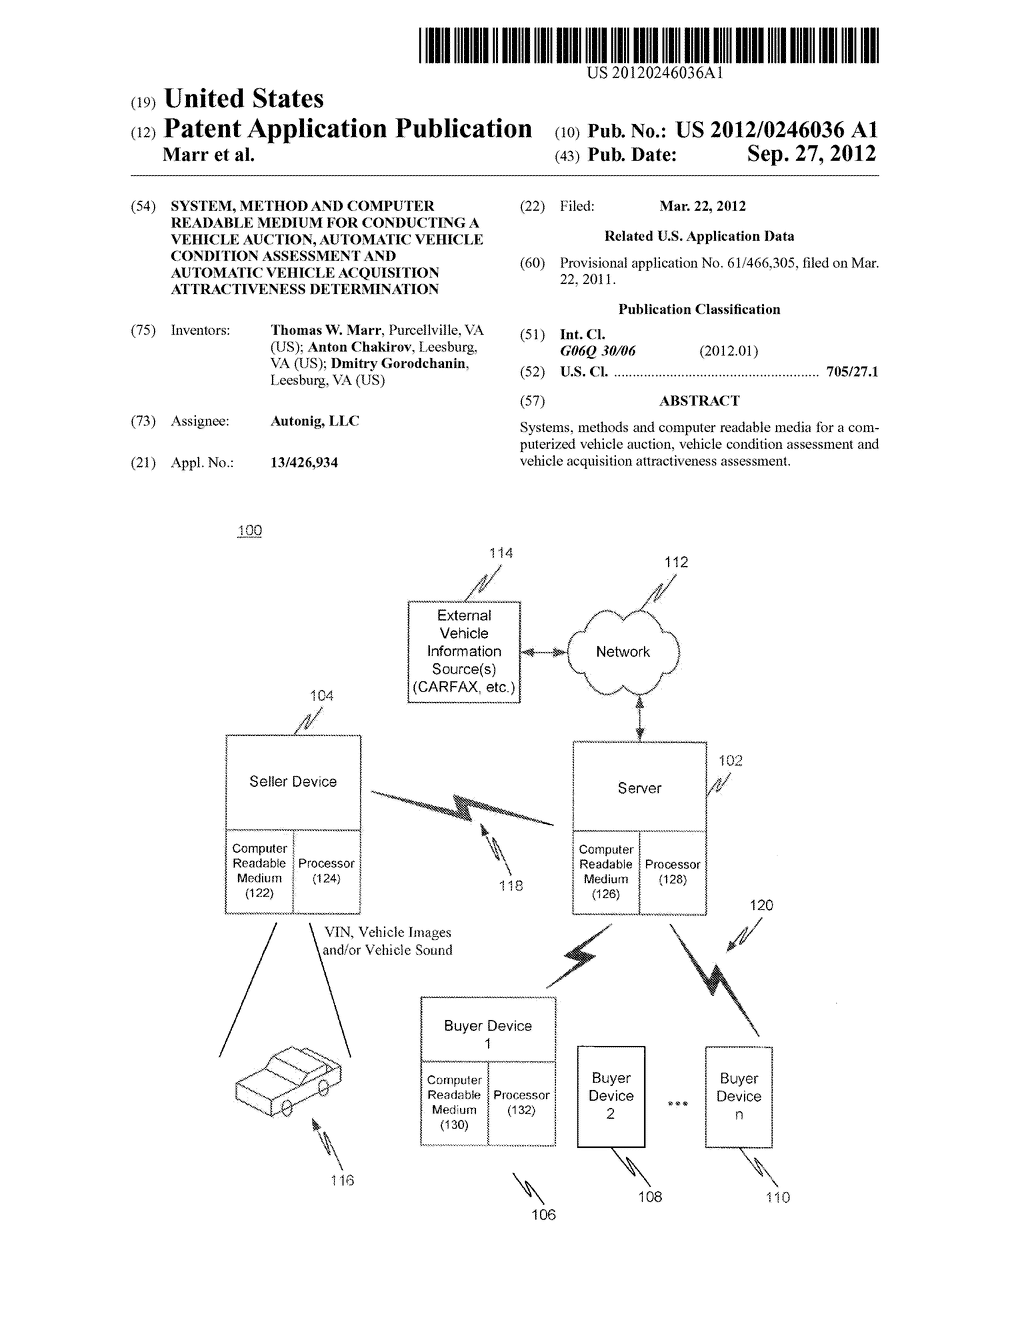 SYSTEM, METHOD AND COMPUTER READABLE MEDIUM FOR CONDUCTING A VEHICLE     AUCTION, AUTOMATIC VEHICLE CONDITION ASSESSMENT AND AUTOMATIC VEHICLE     ACQUISITION ATTRACTIVENESS DETERMINATION - diagram, schematic, and image 01